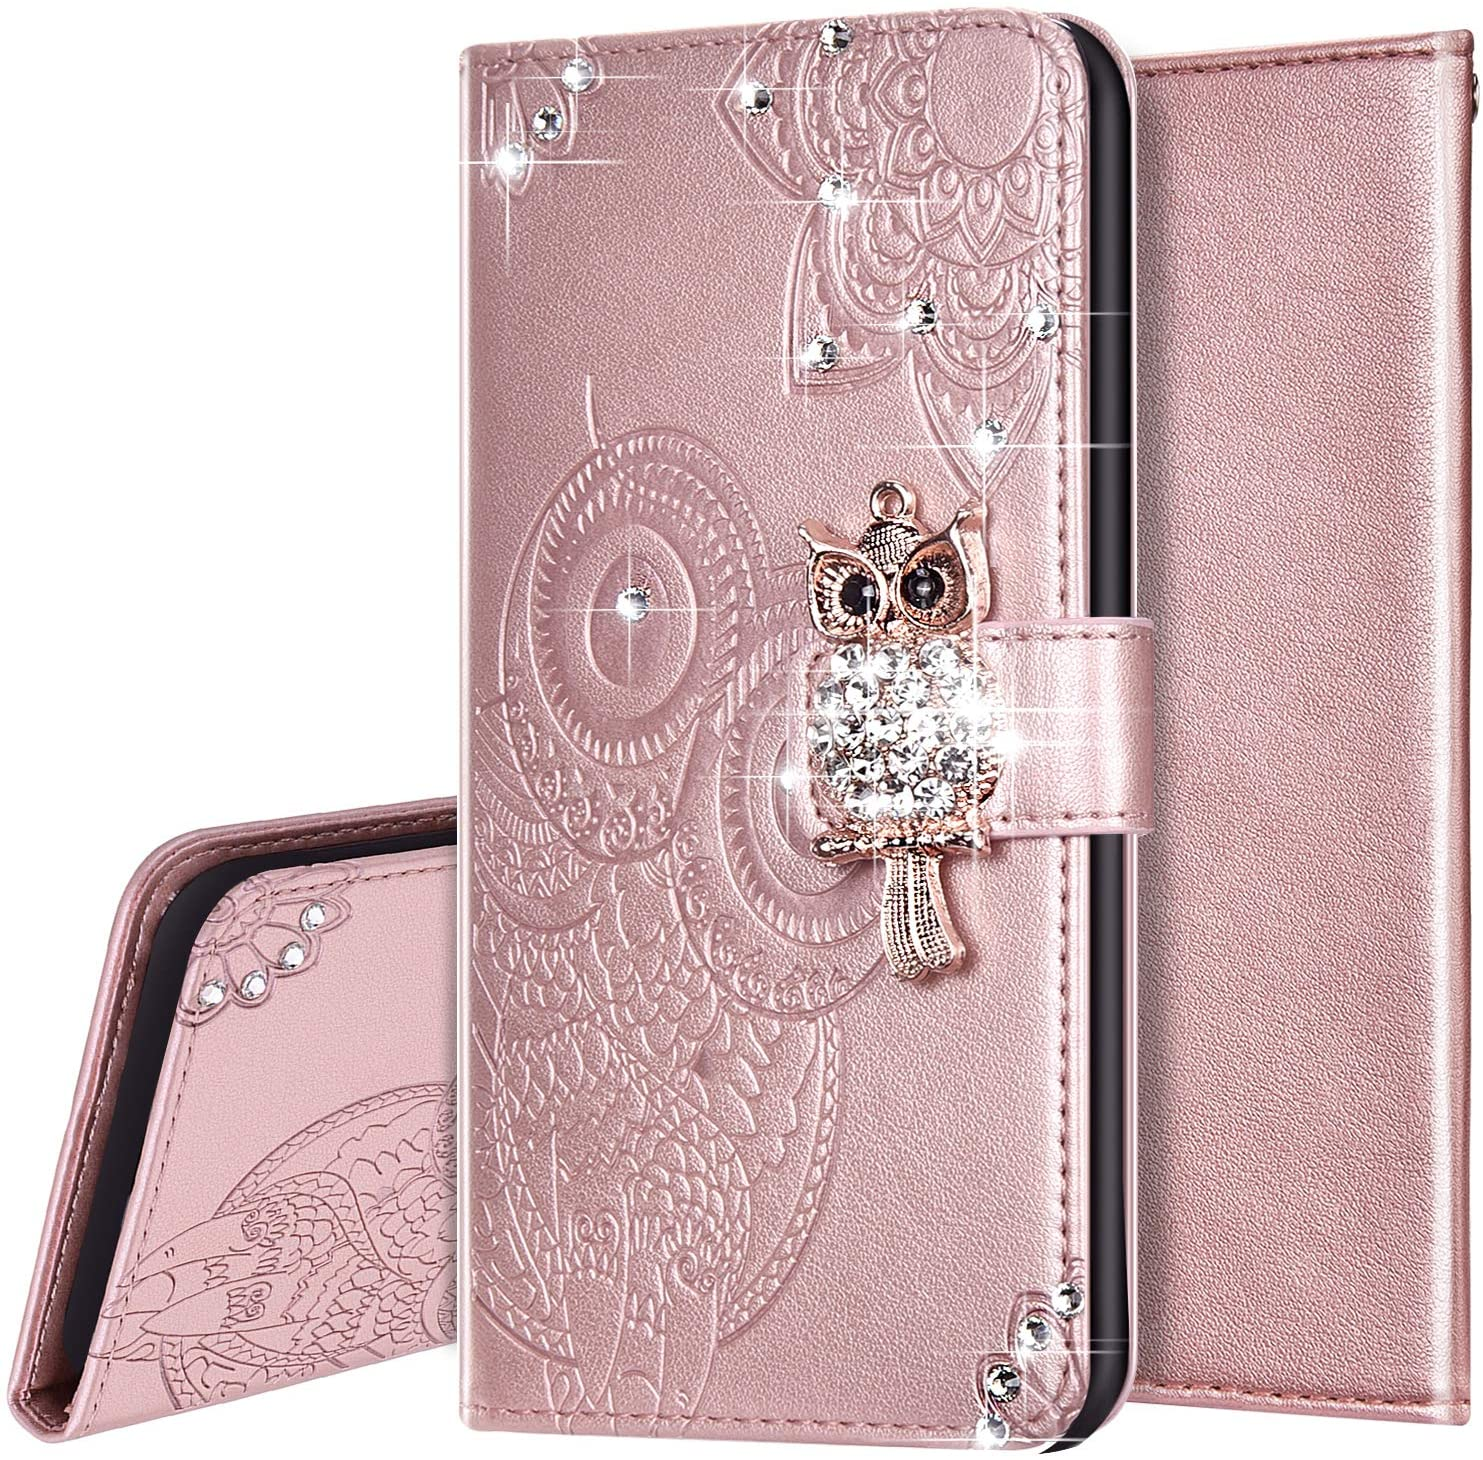 PHEZEN Case for Samsung Galaxy S20 Bling Wallet Case,Luxury 3D Bling Crystal Rhinestone Owl Floral PU Leather Wallet Flip Case With Card Slots & Kickstand for Galaxy S20,Rose Gold